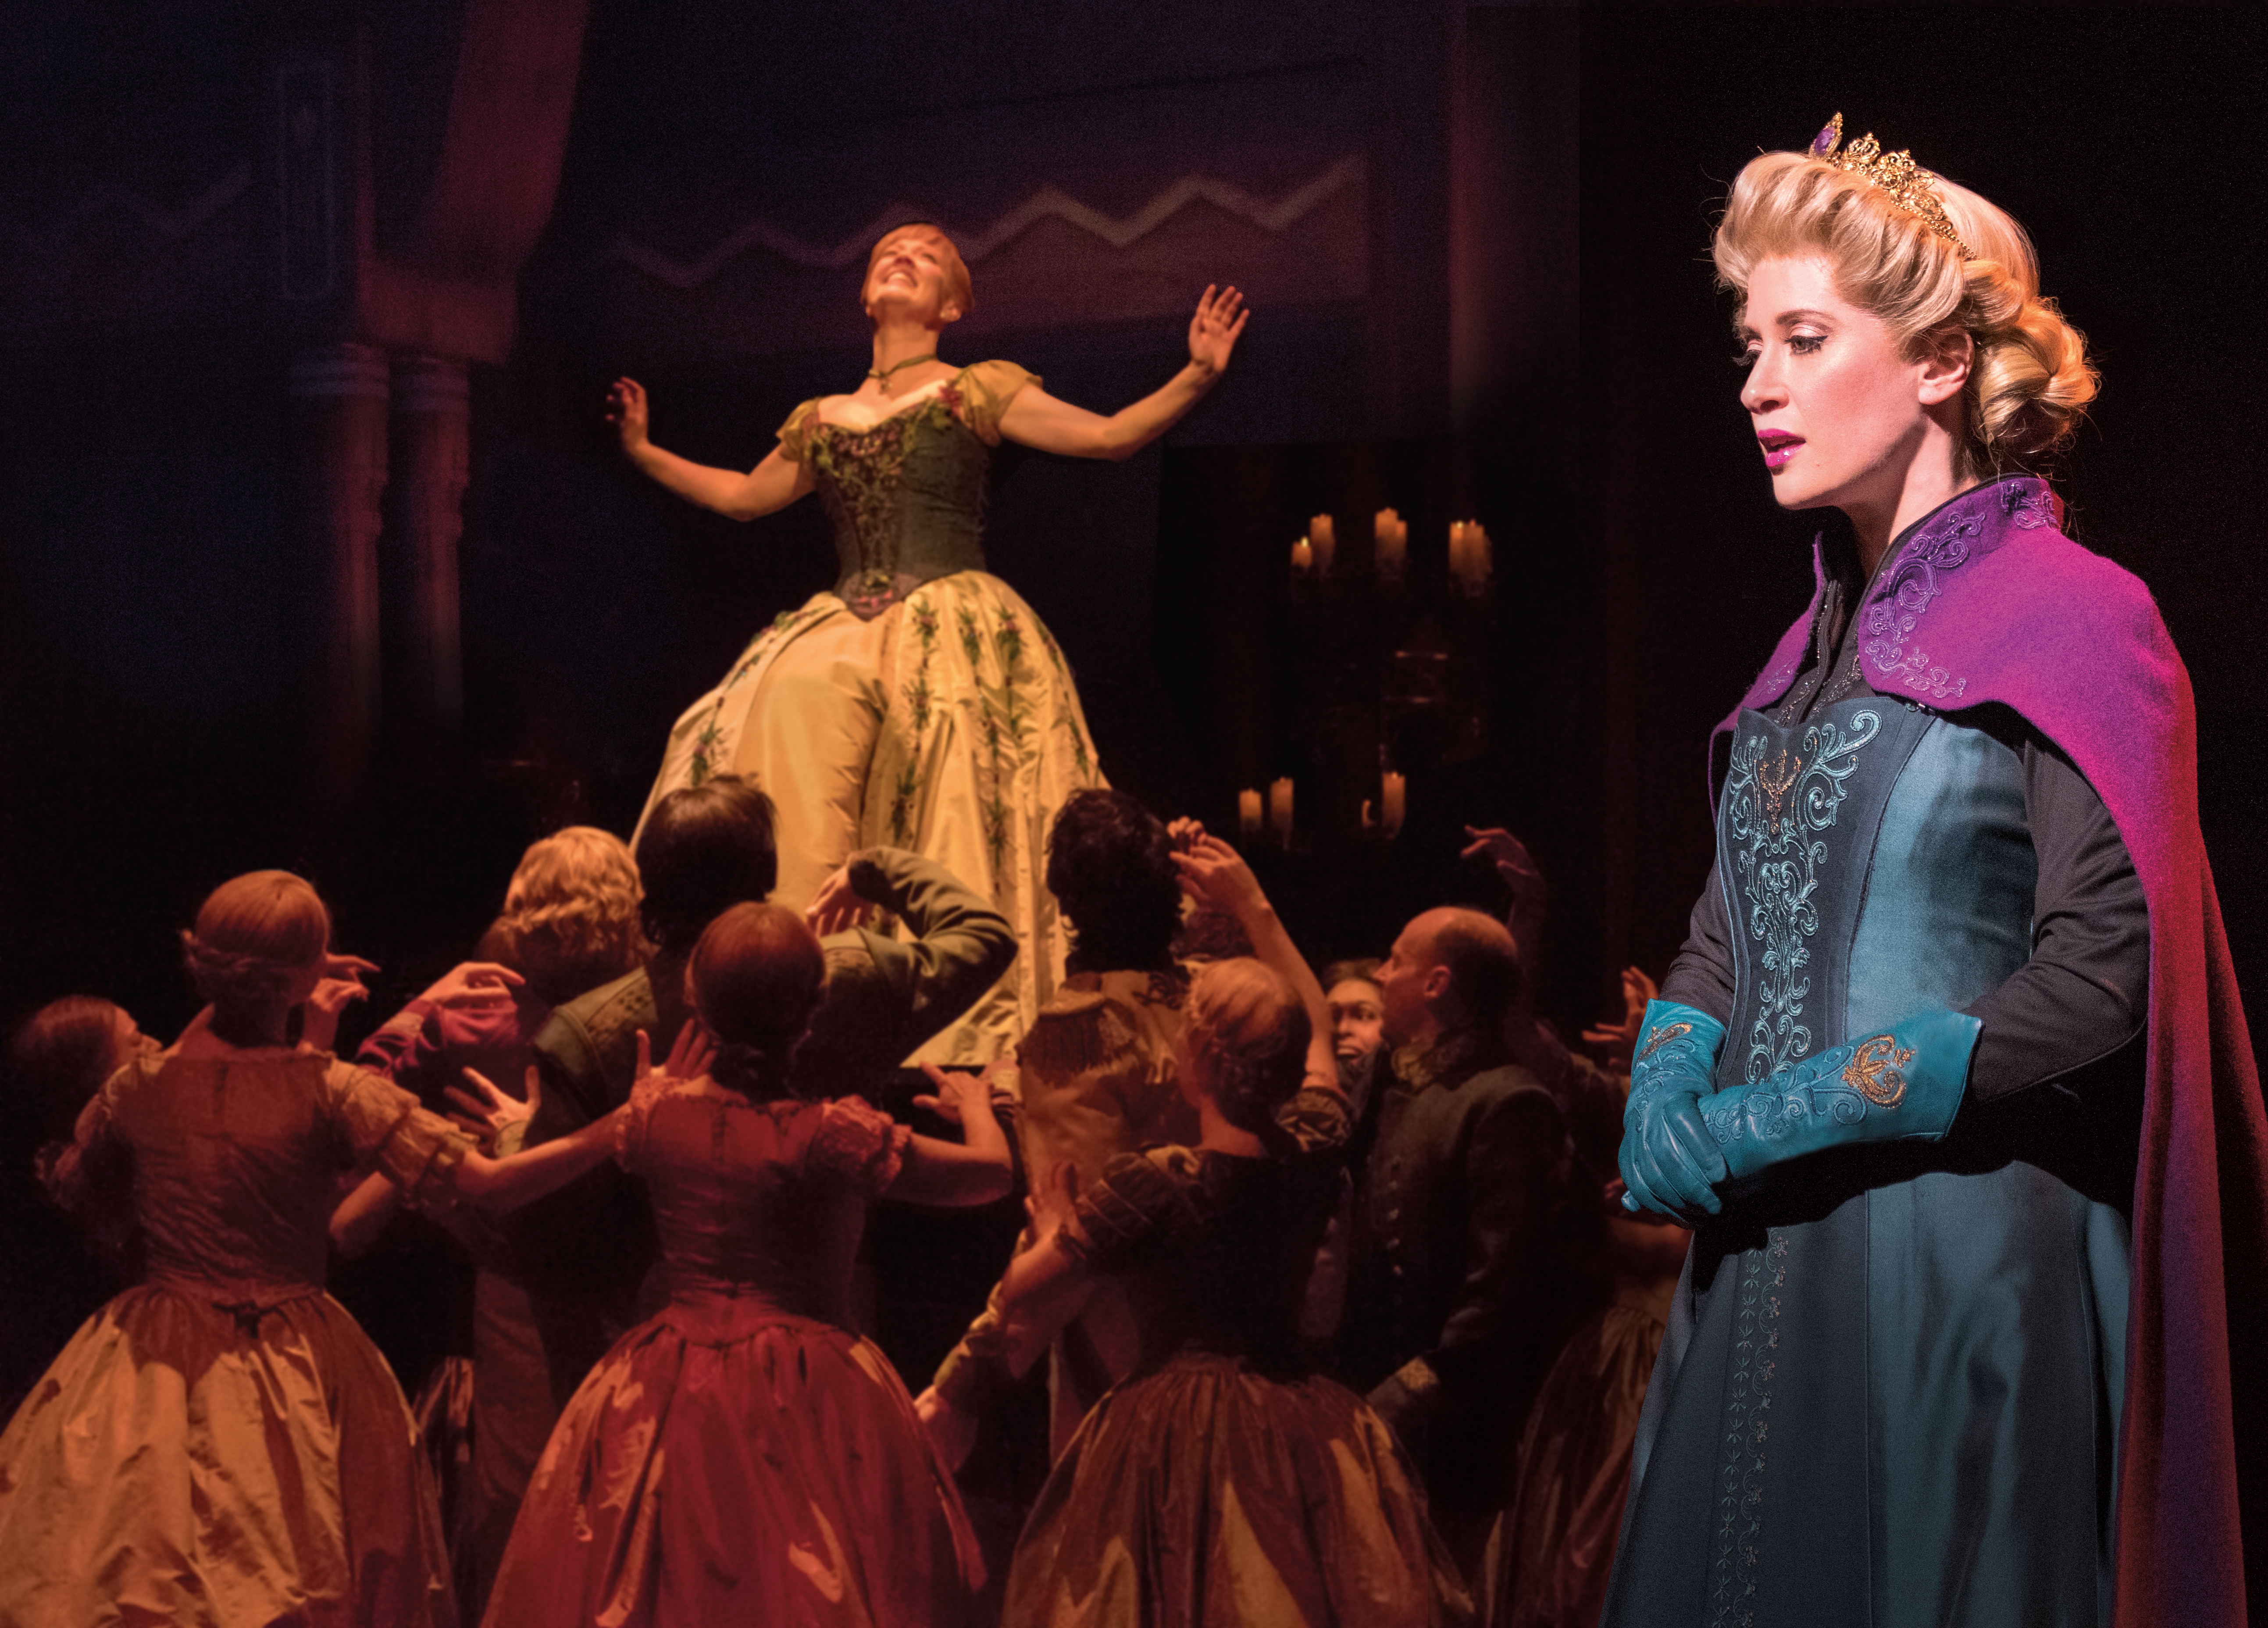 Patti-Murin-Anna-Caissie-Levy-Elsa-and-the-Company-of-FROZEN-on-Broadway-Lift.-Photo-by-Deen-van-Meer.jpg